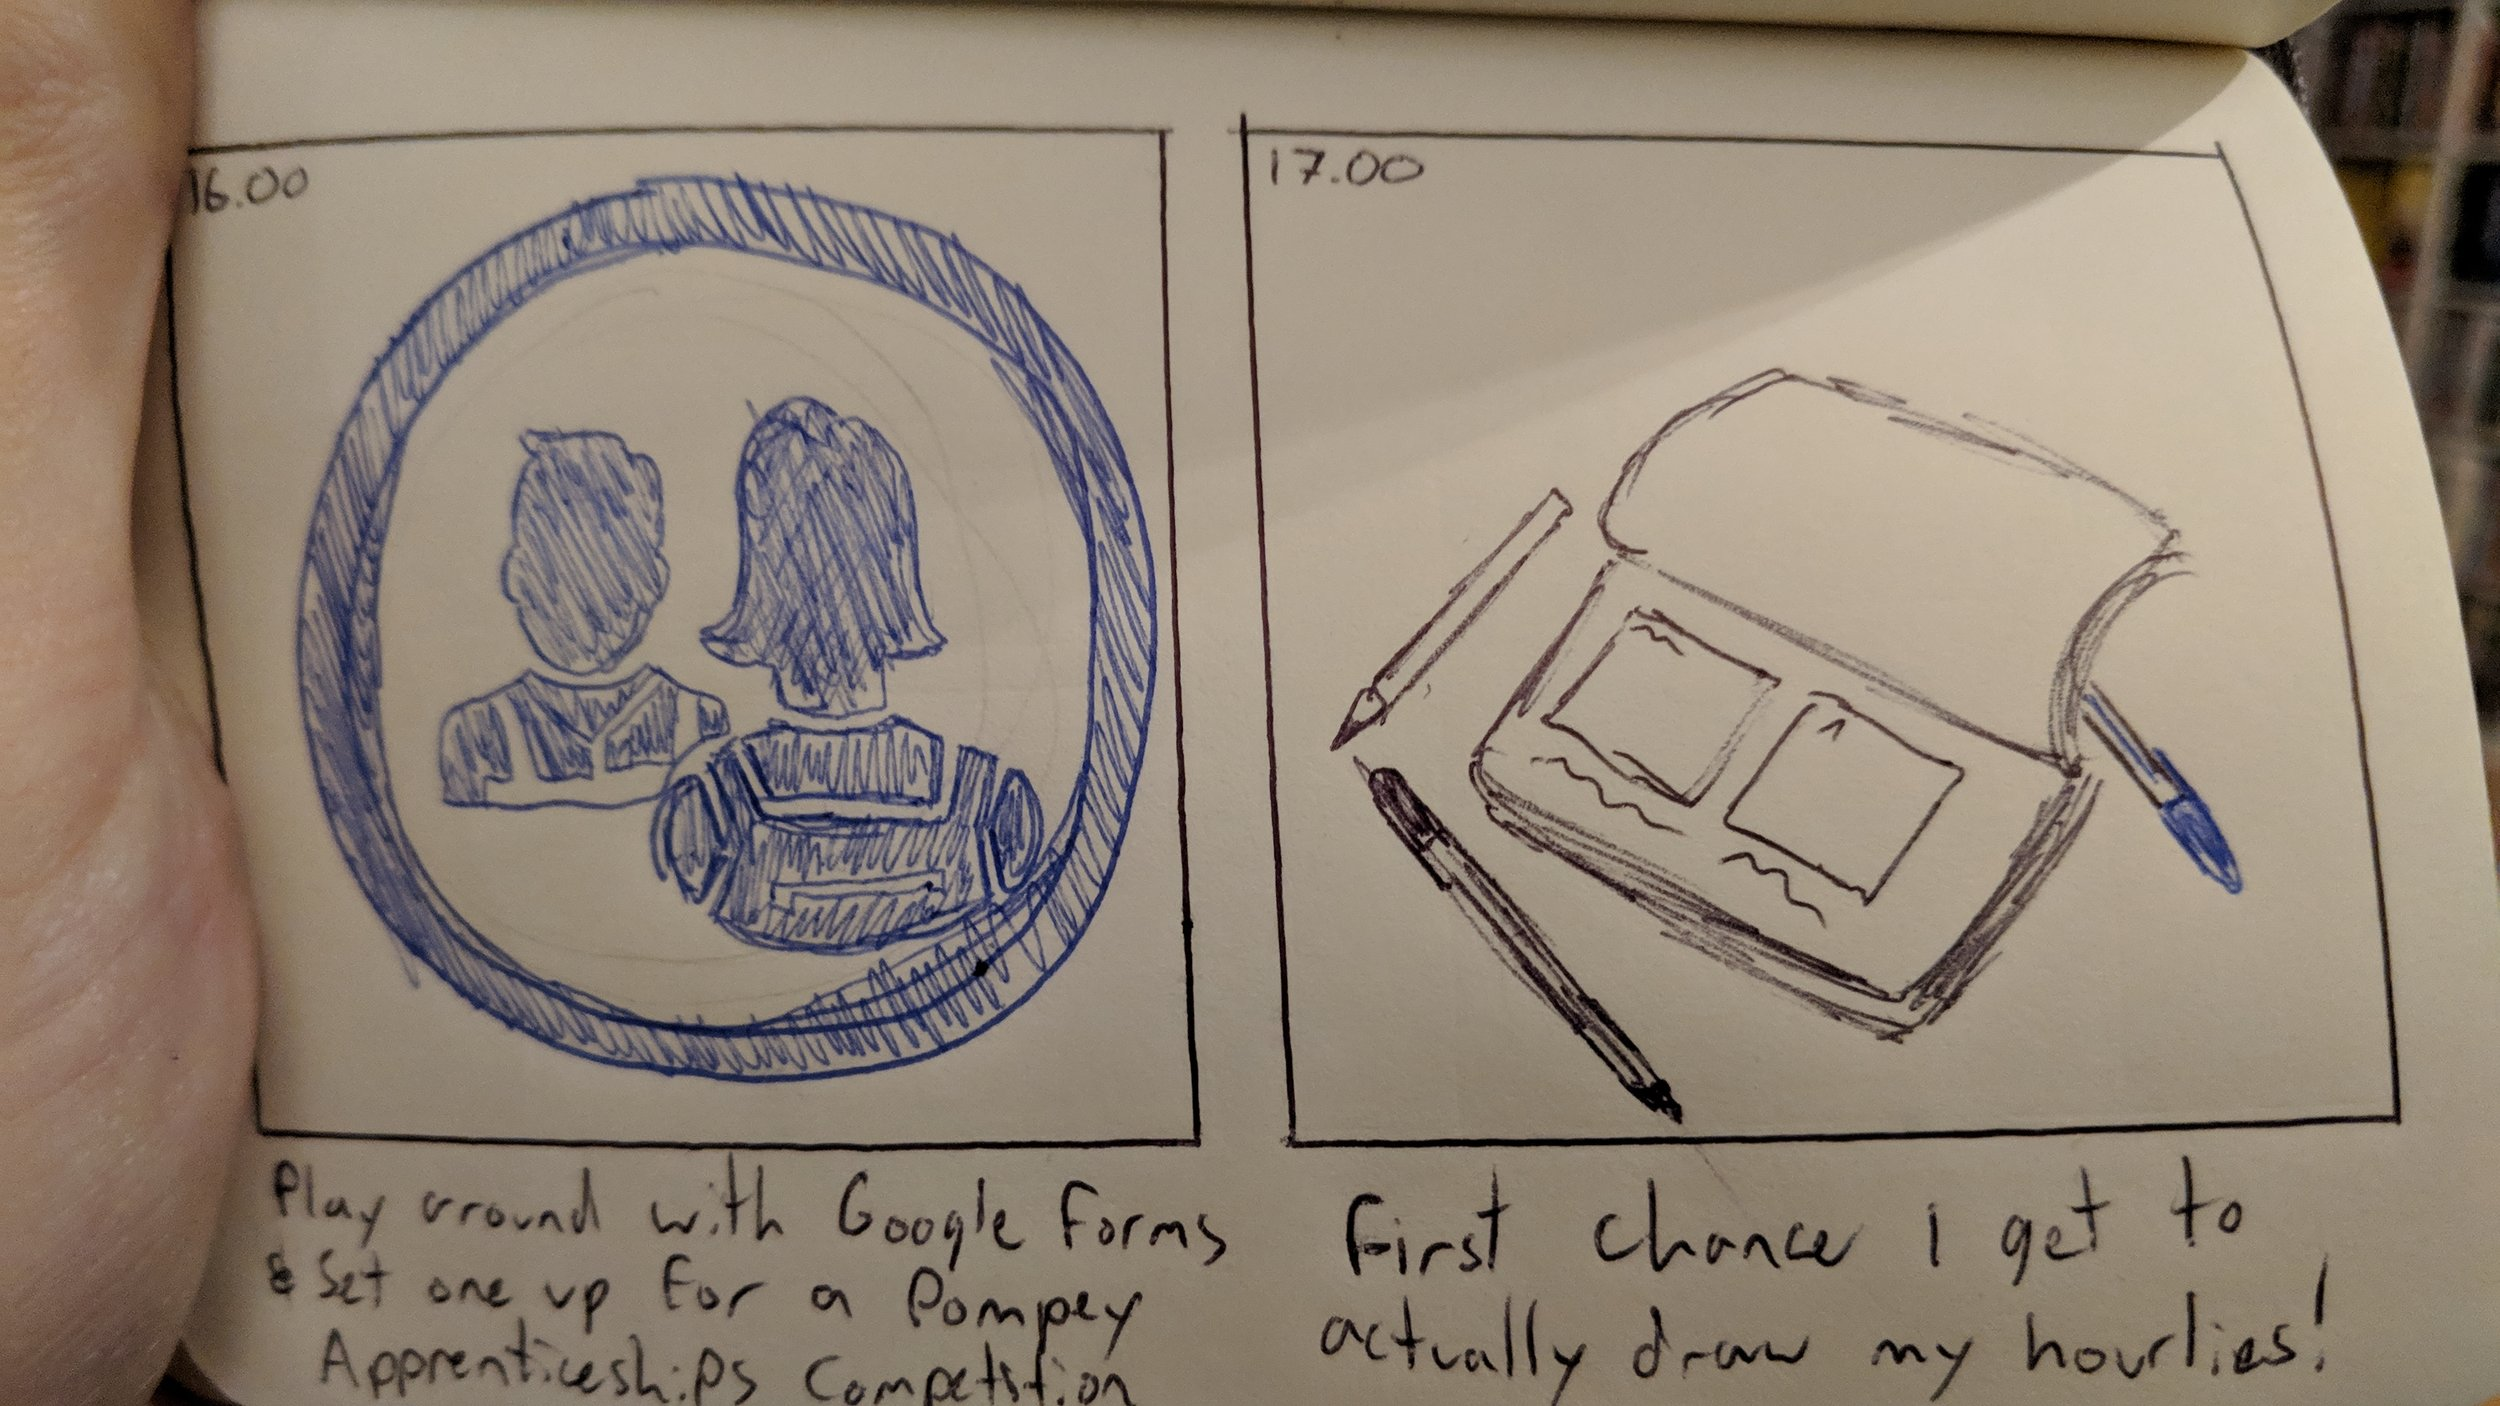 16:00 - play around with Google Forms and set one up for a  @pompeyapprenticeships  competition. 17:00 - First chance I get to actually draw my hourlies!